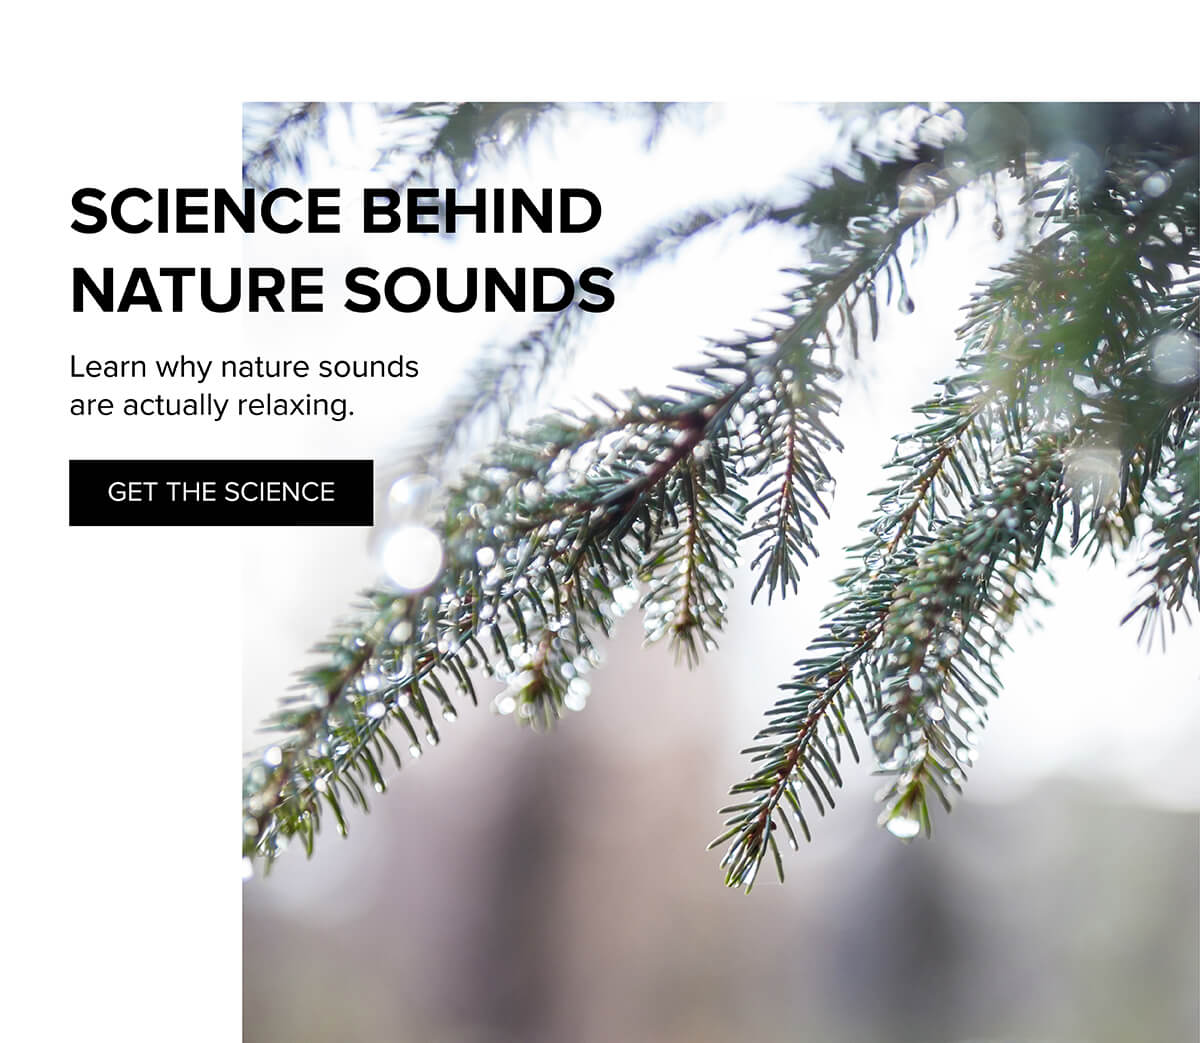 Science behind nature sounds